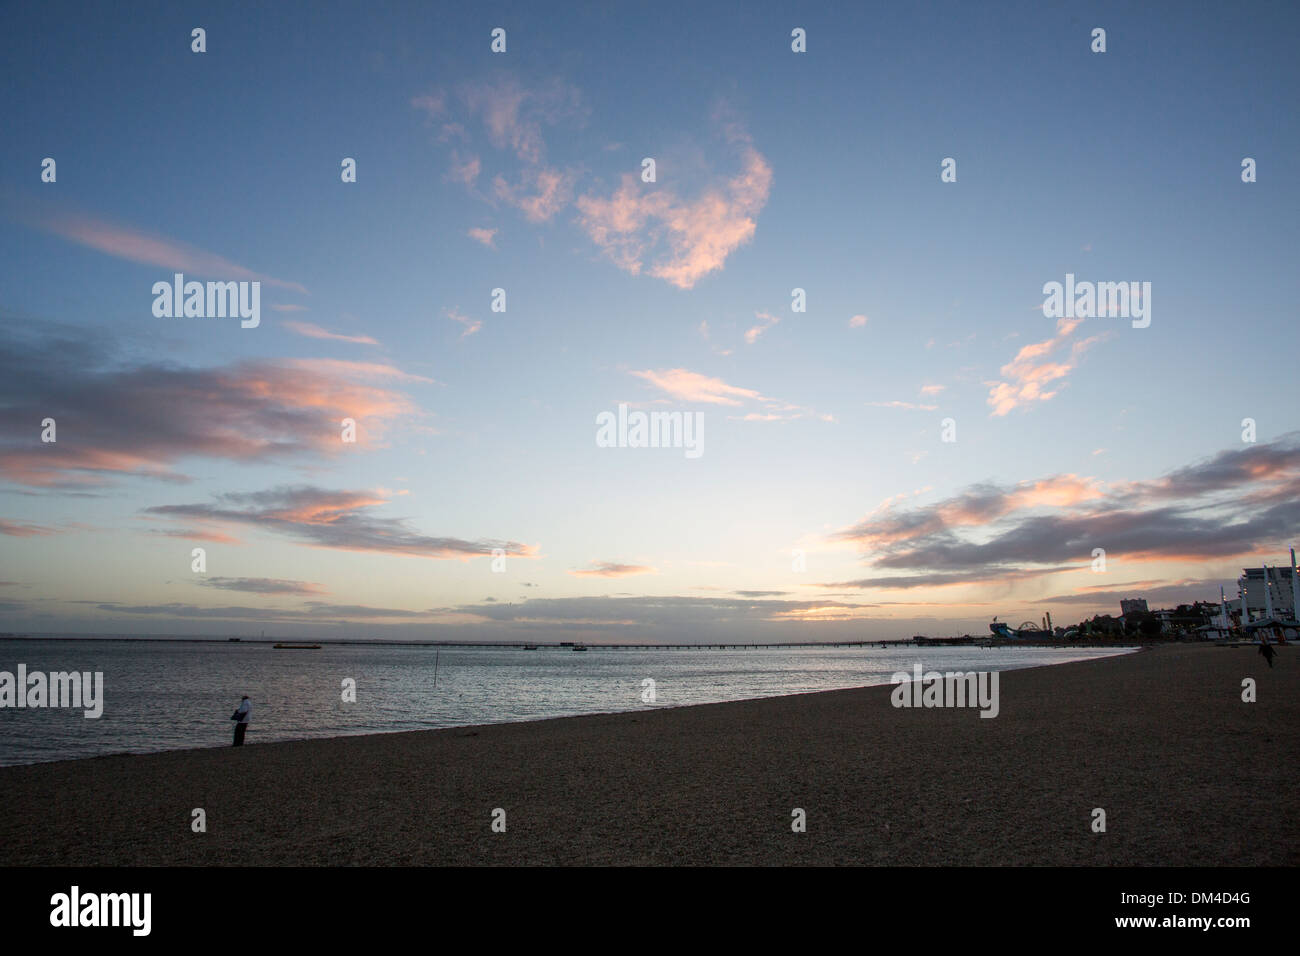 10/10/2013 Southend pier and river Thames from Jubilee beach, Southend-On-Sea, Essex, UK - Stock Image